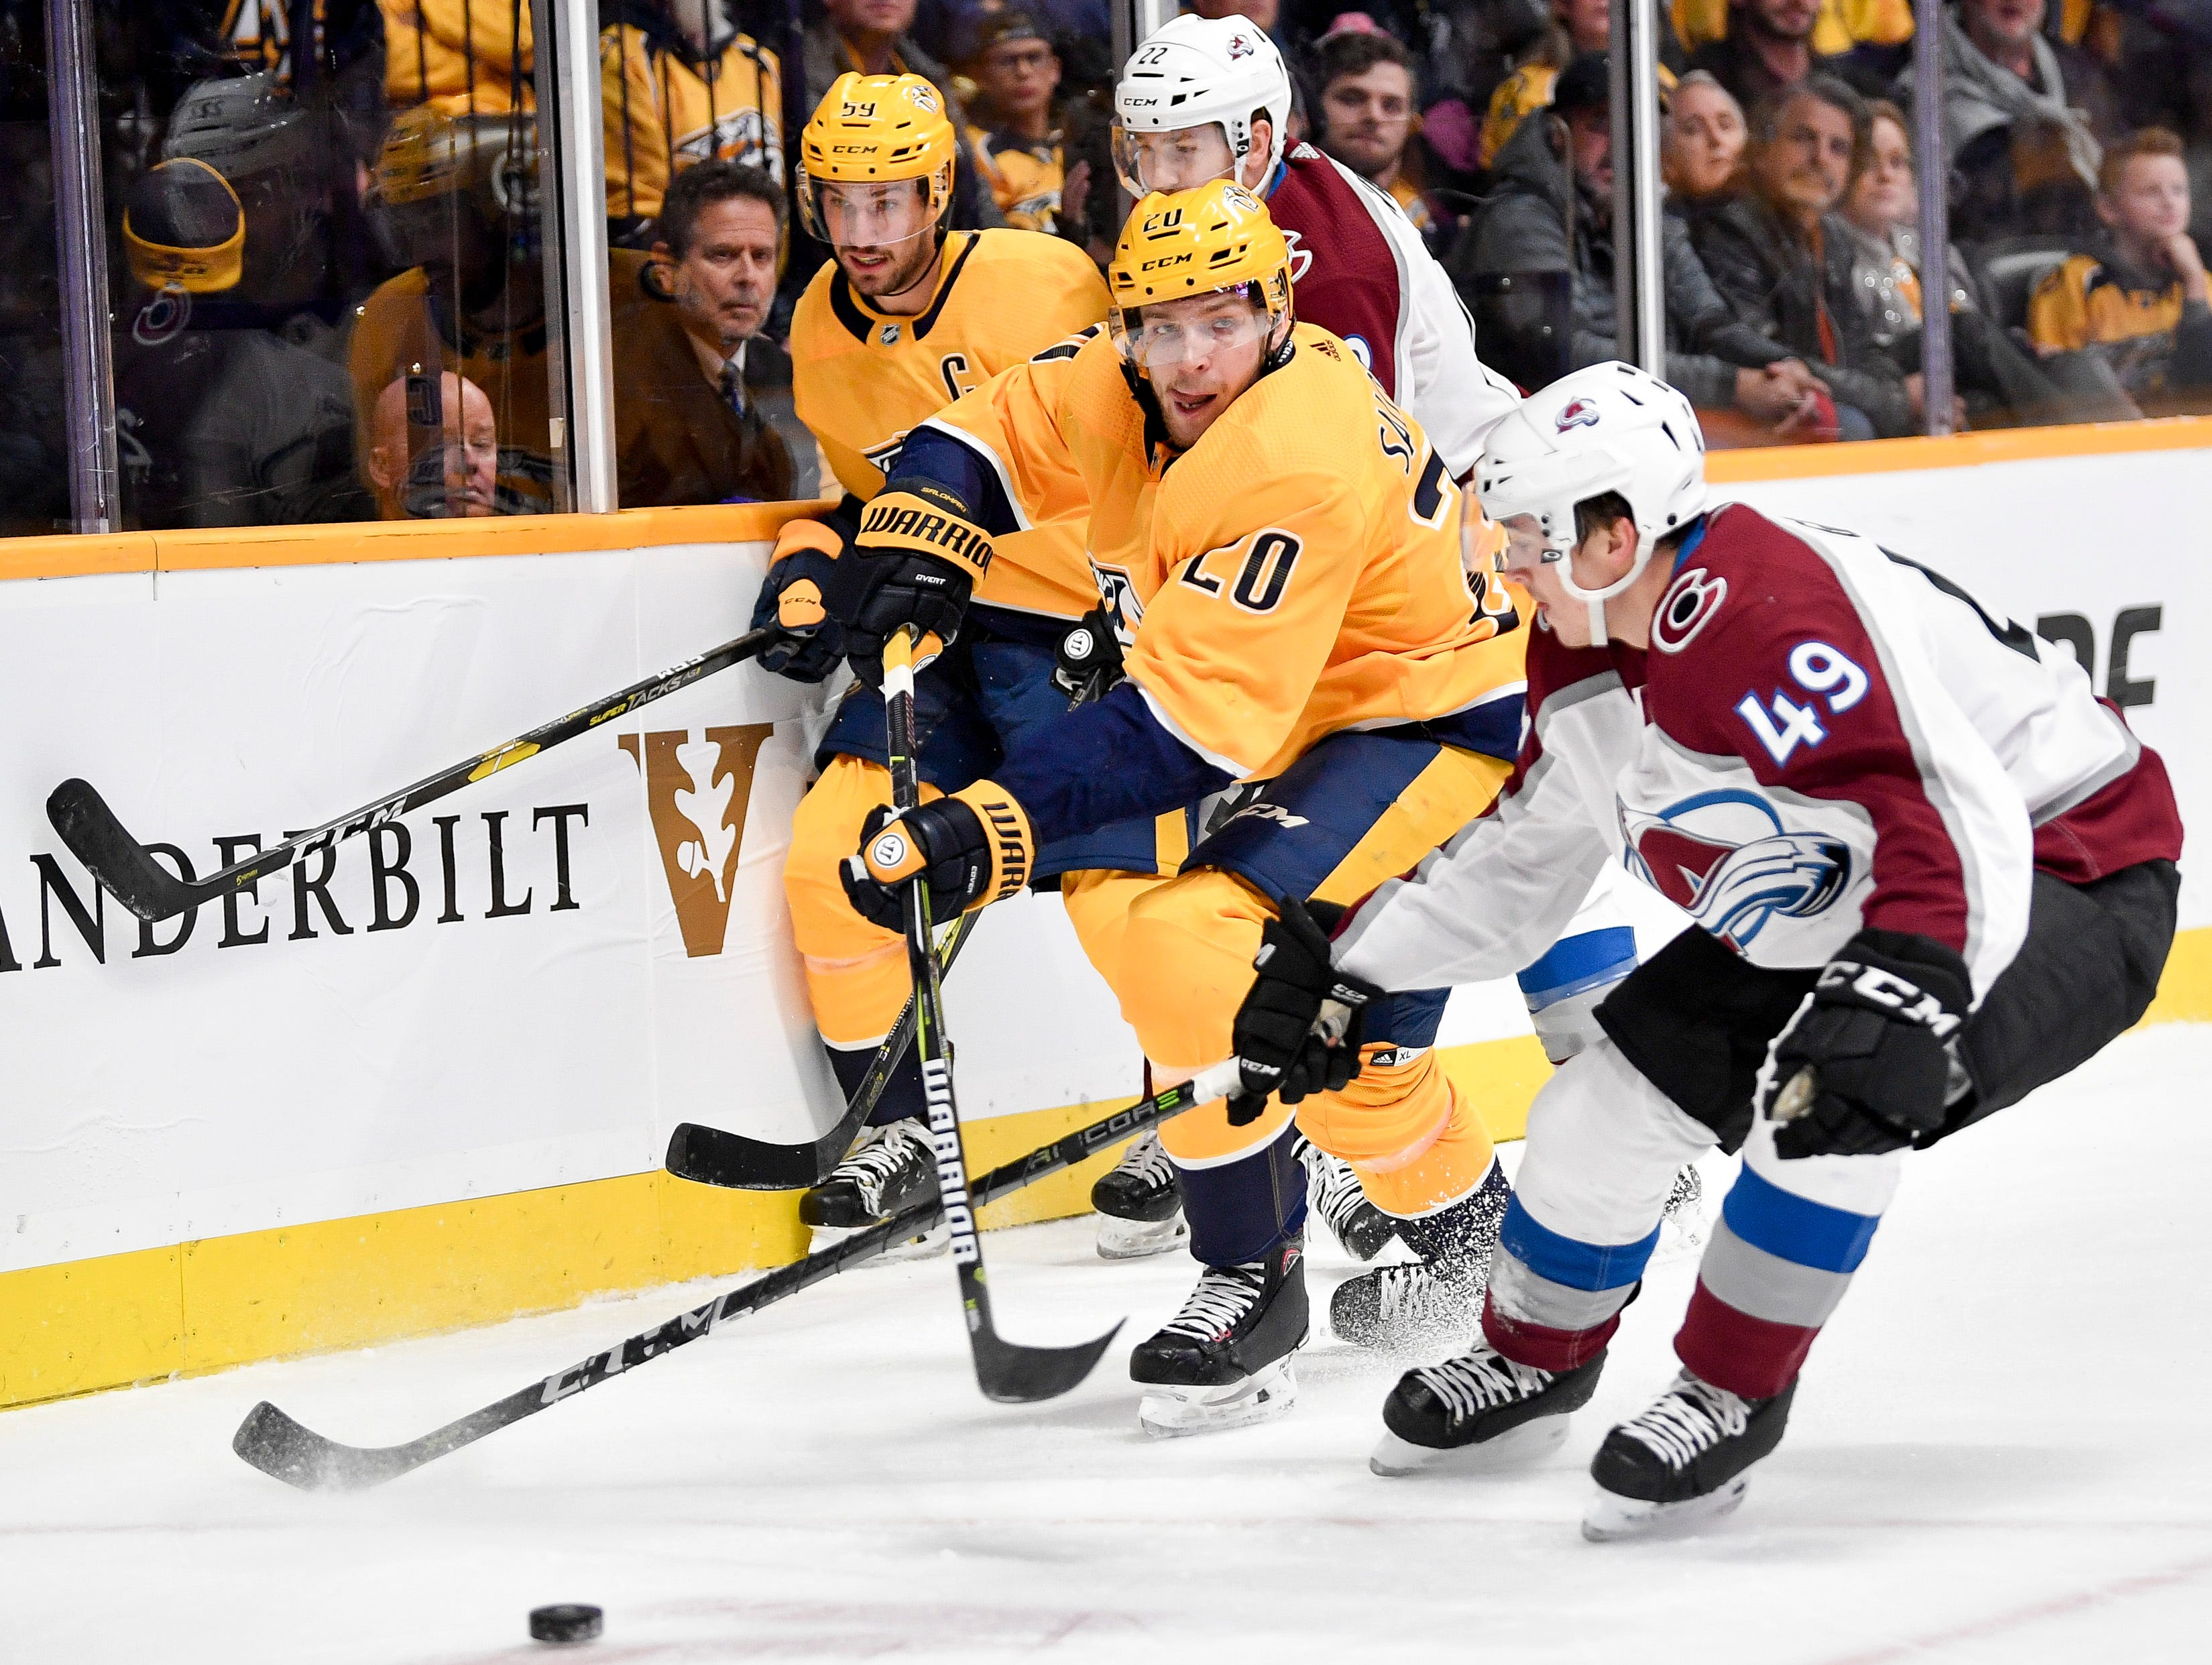 Nashville Predators right wing Miikka Salomaki (20) fights for the puck with Colorado Avalanche defenseman Samuel Girard (49) during the first period at Bridgestone Arena in Nashville, Tenn., Tuesday, Nov. 27, 2018.